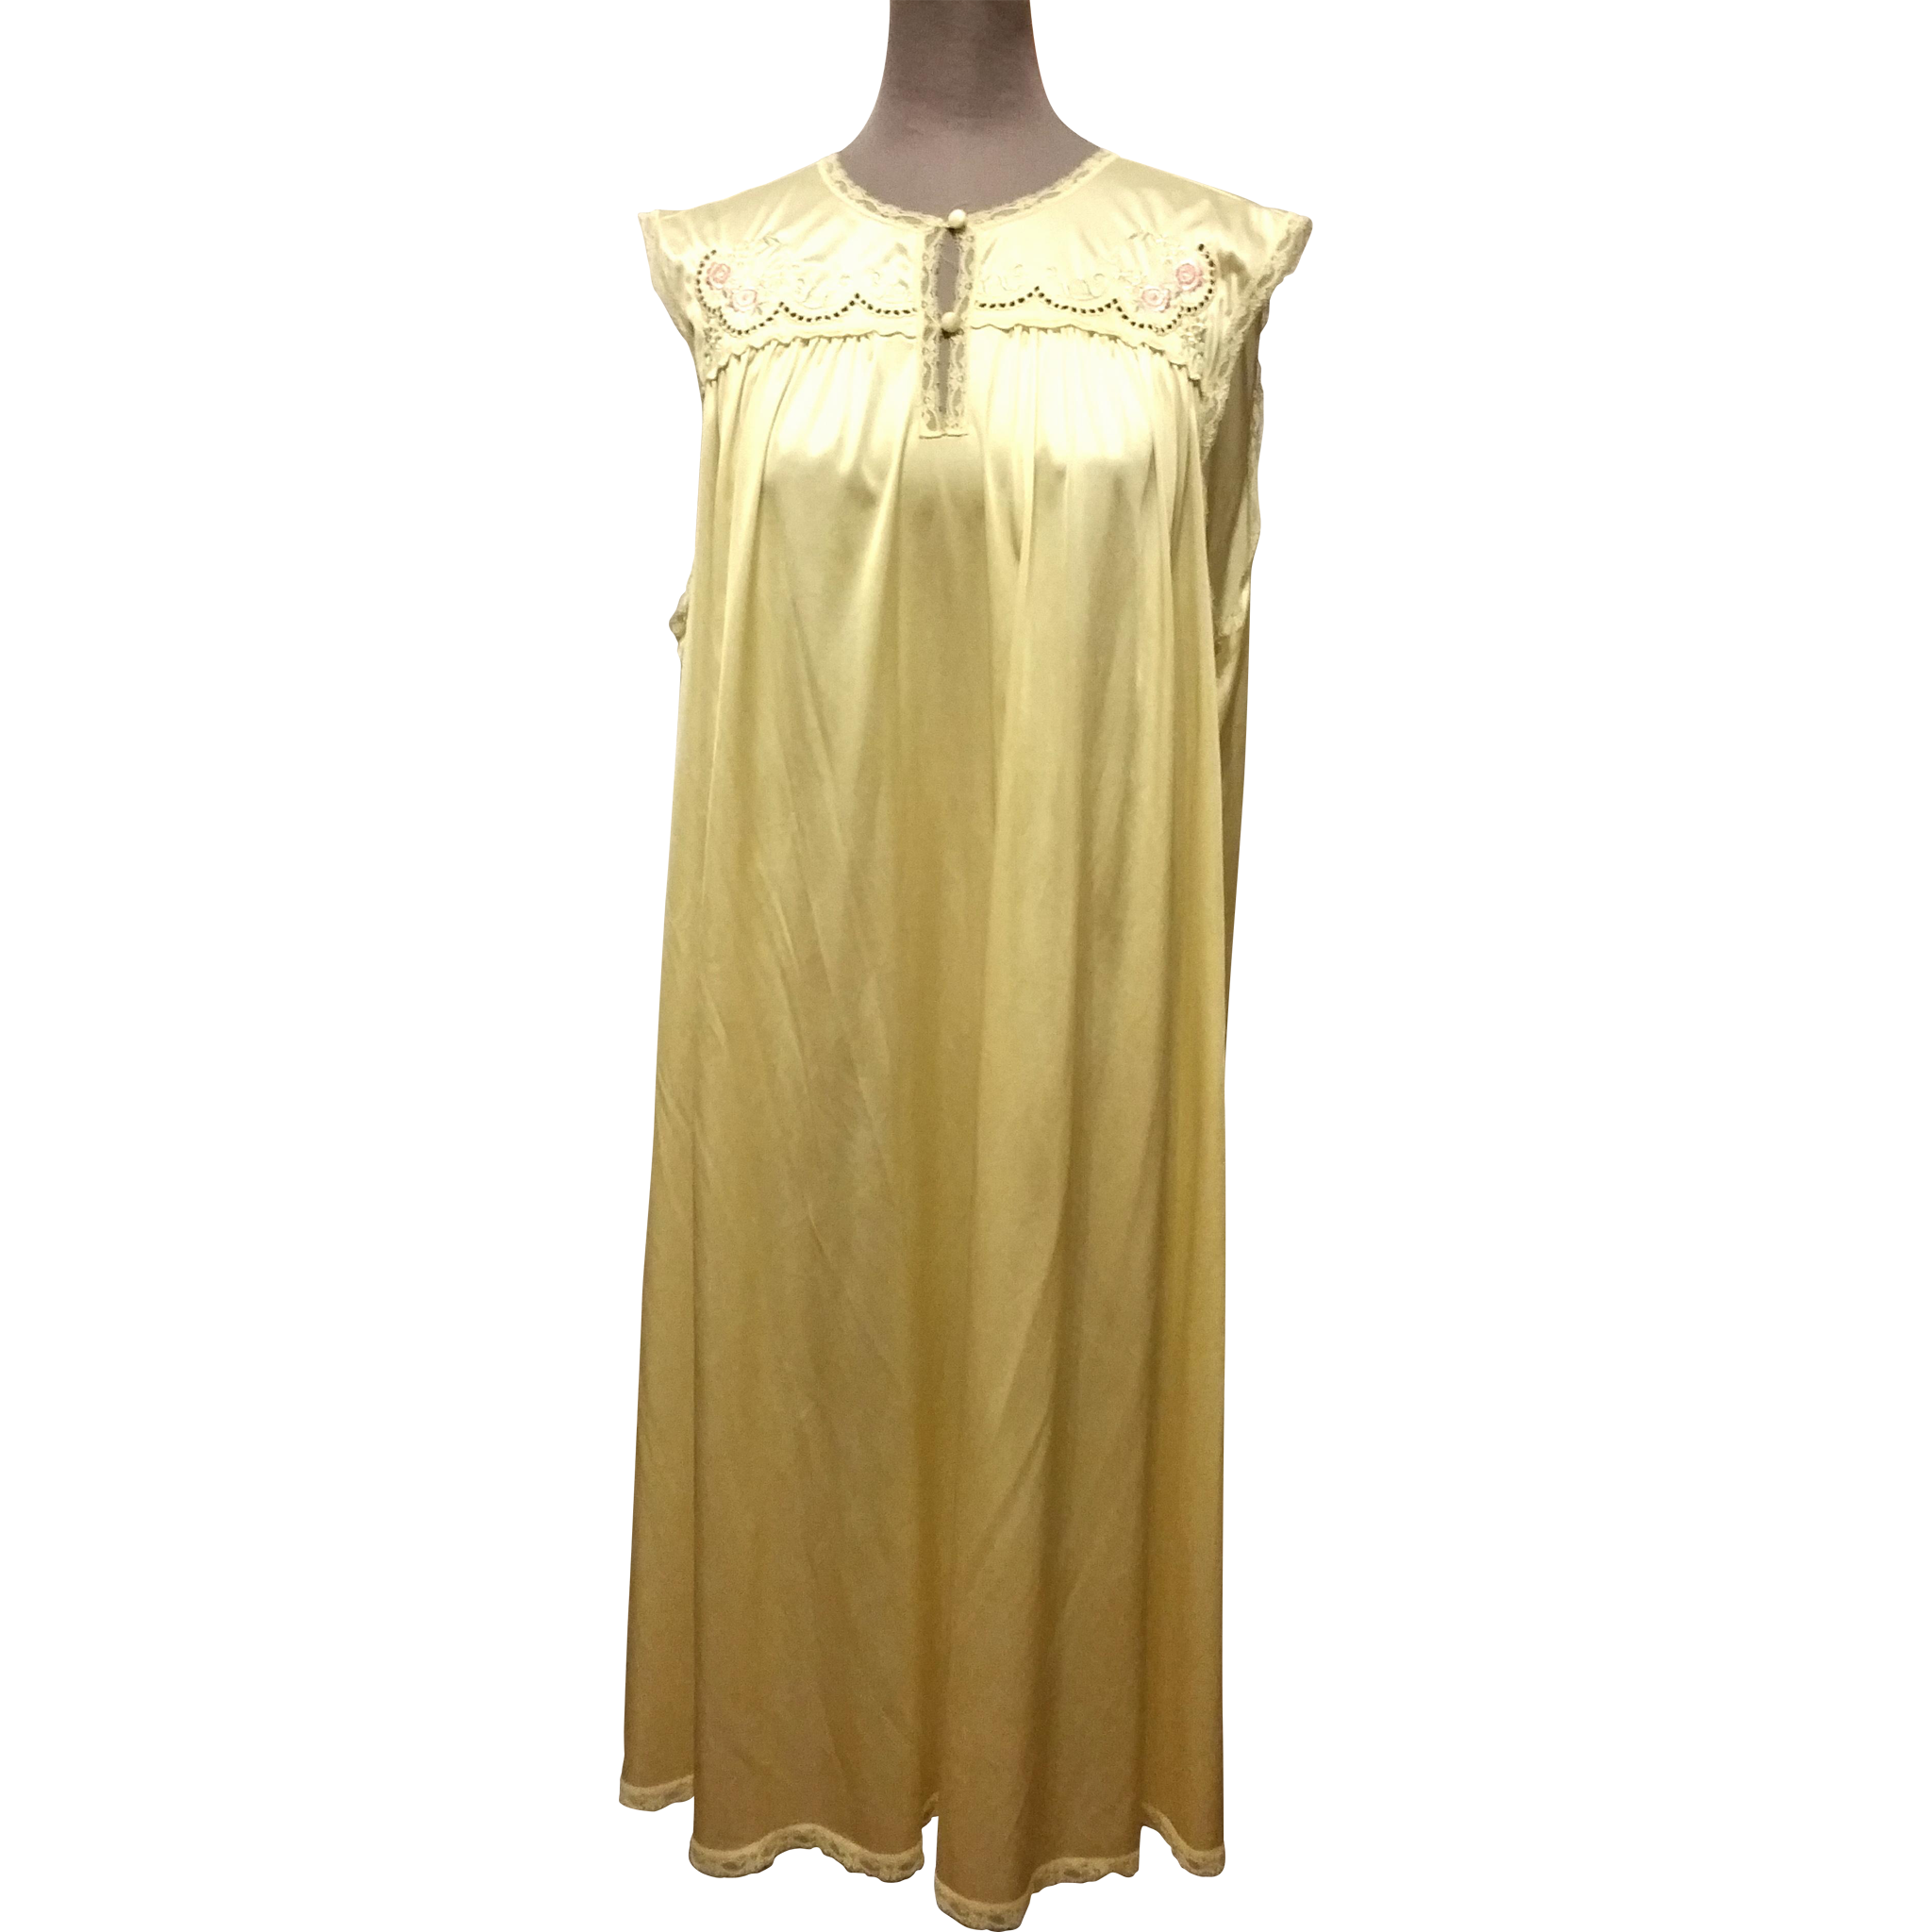 Vintage Vanity Fair Nightgown Butter Yellow with Lace ...